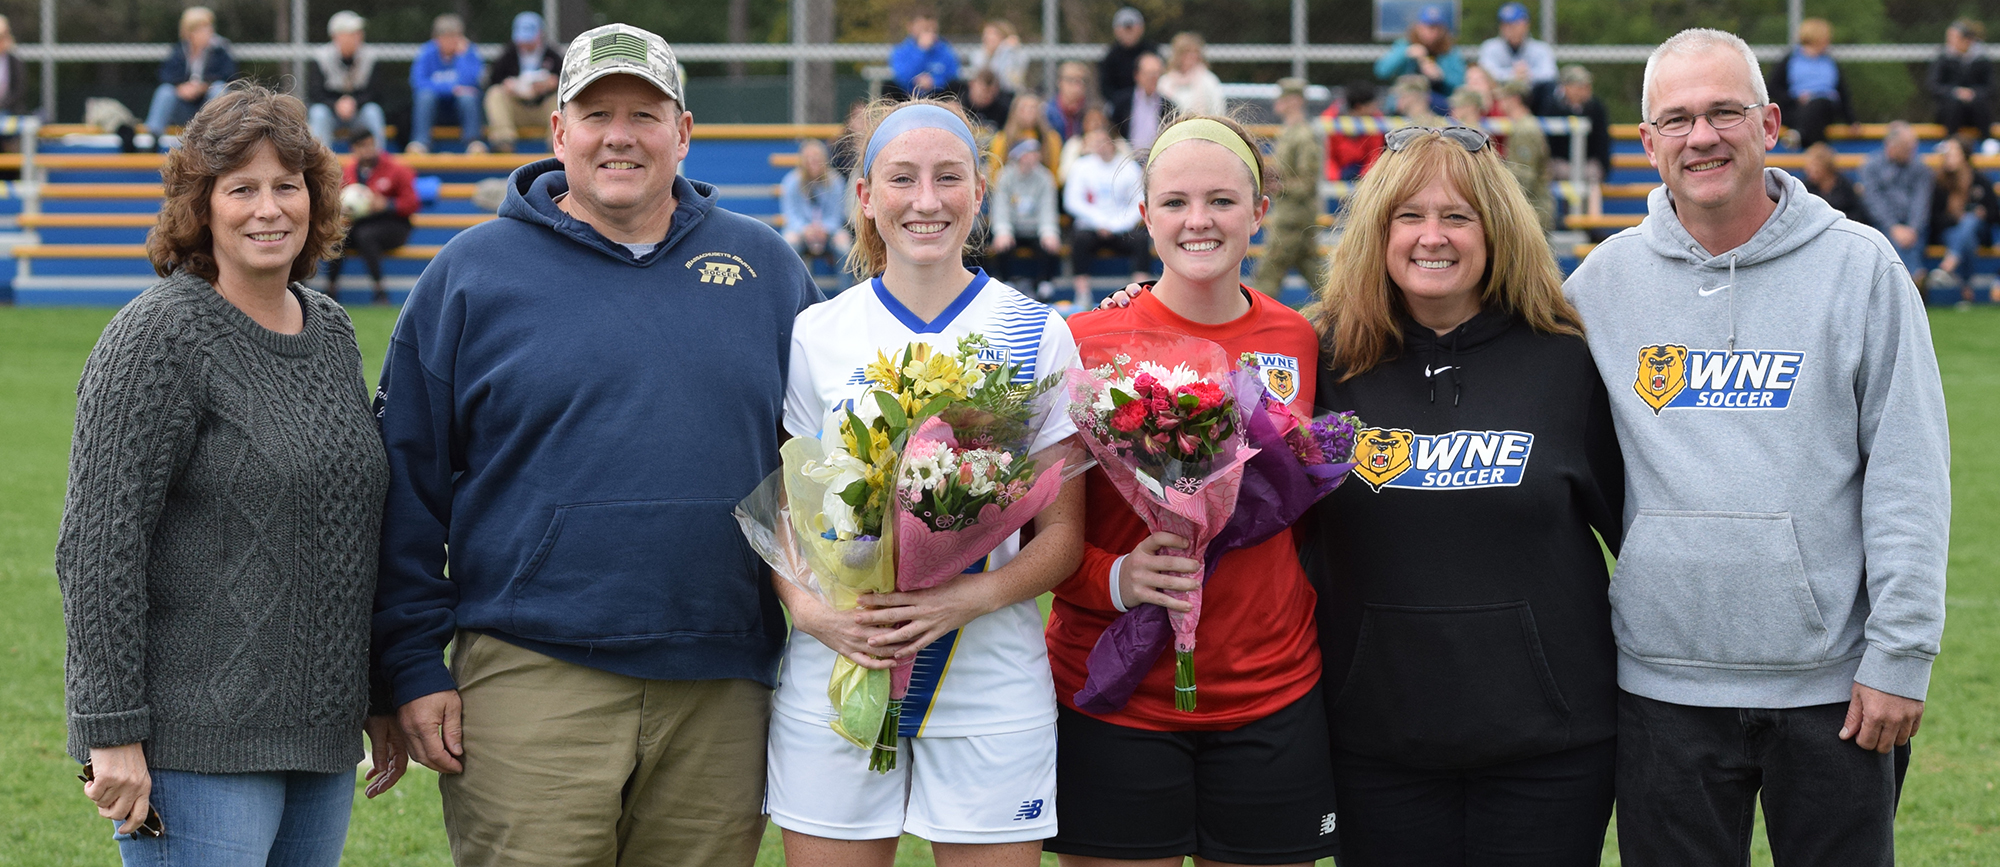 Seniors Erin Grimes and Marissa Veilleux were honored before the start of Western New England's 1-1 draw with UNE on Saturday. (Photo by Rachael Margossian)